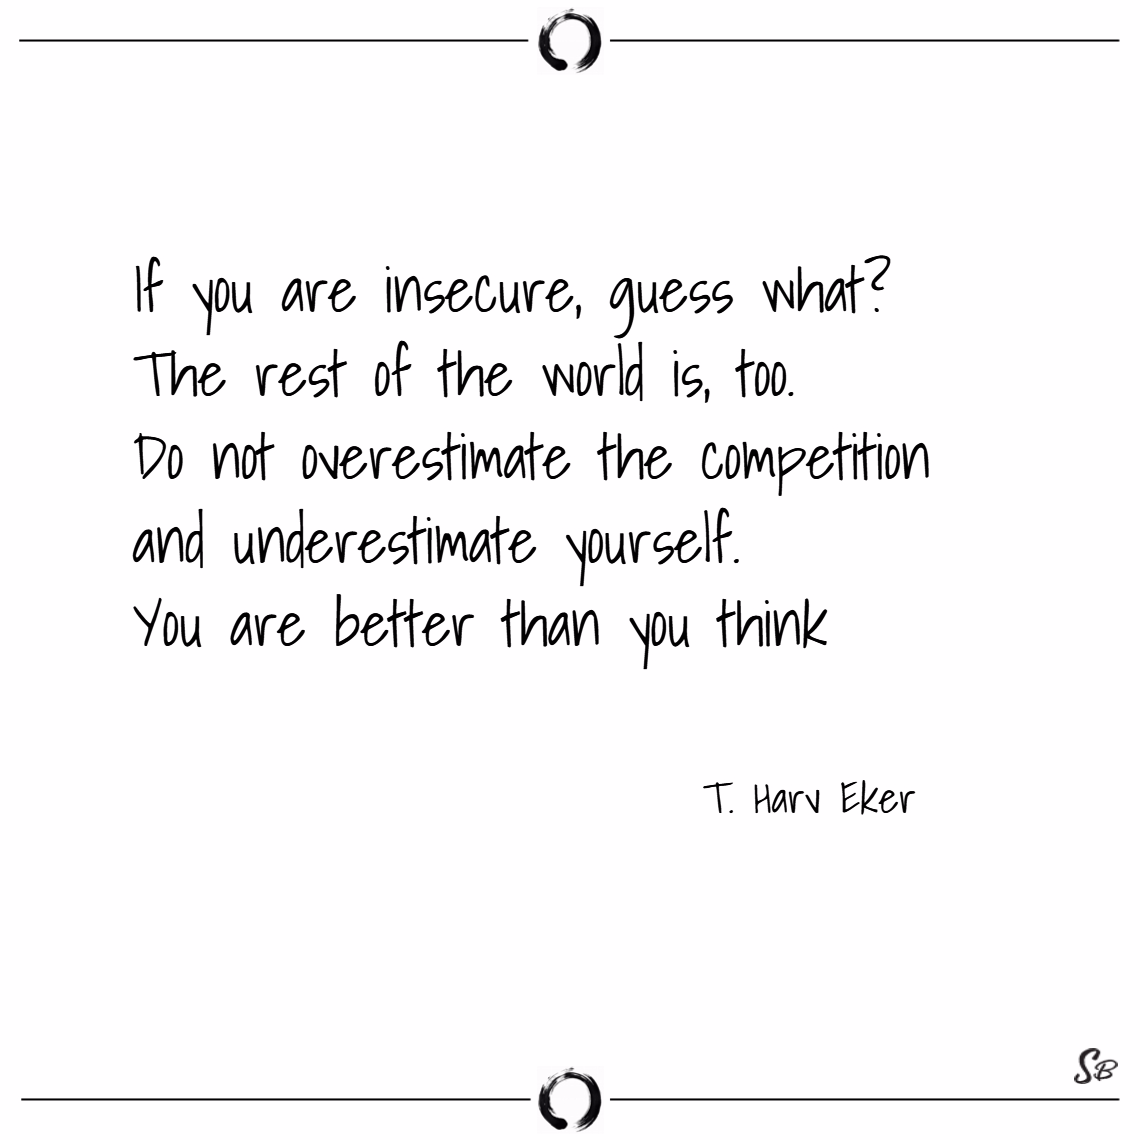 If you are insecure, guess what – t. harv eker